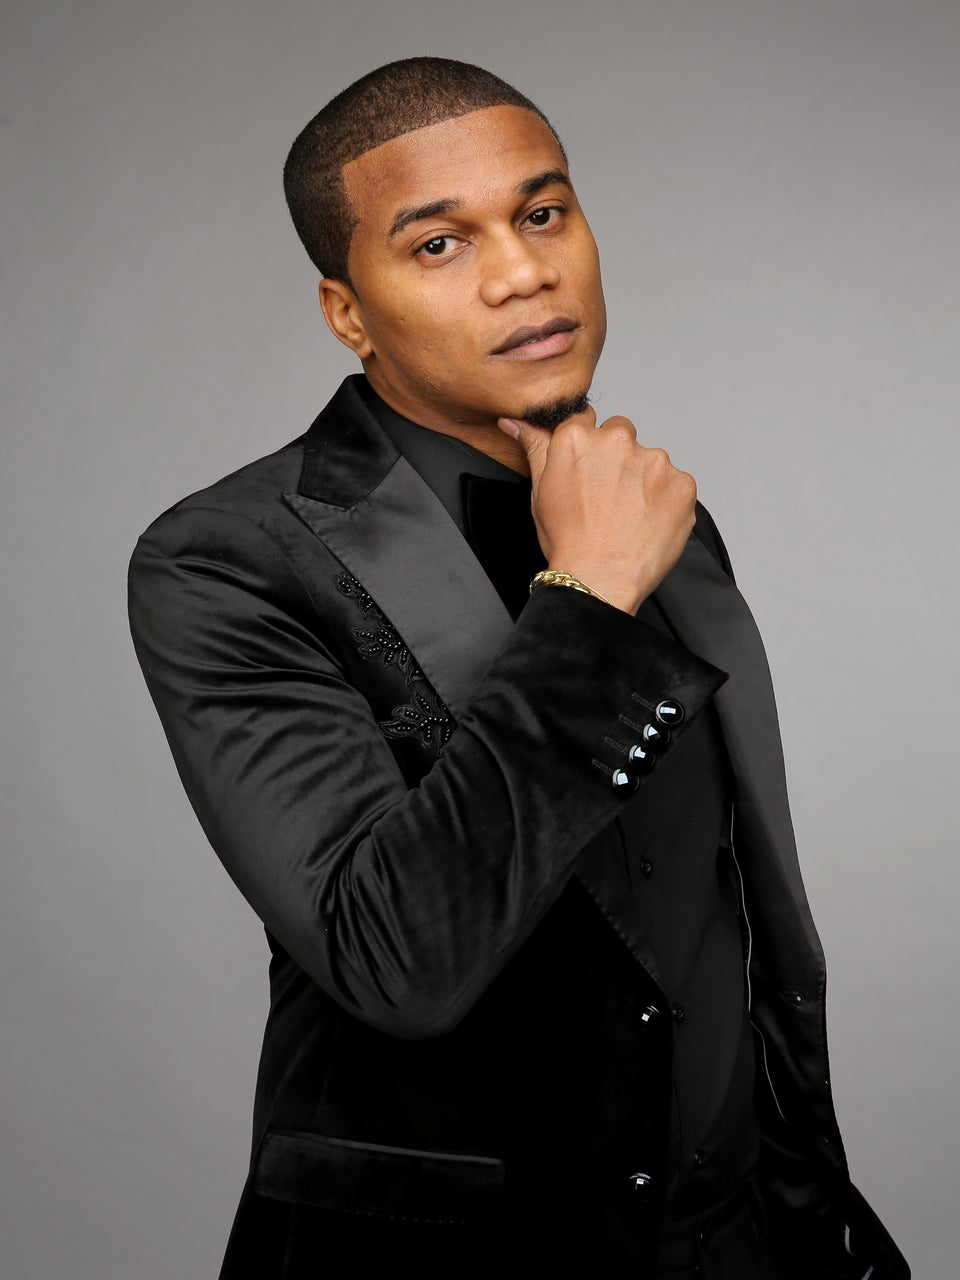 Cory Hardrict Dishes On His Gritty New Role On The 50-Cent Produced Crime Drama 'The Oath'